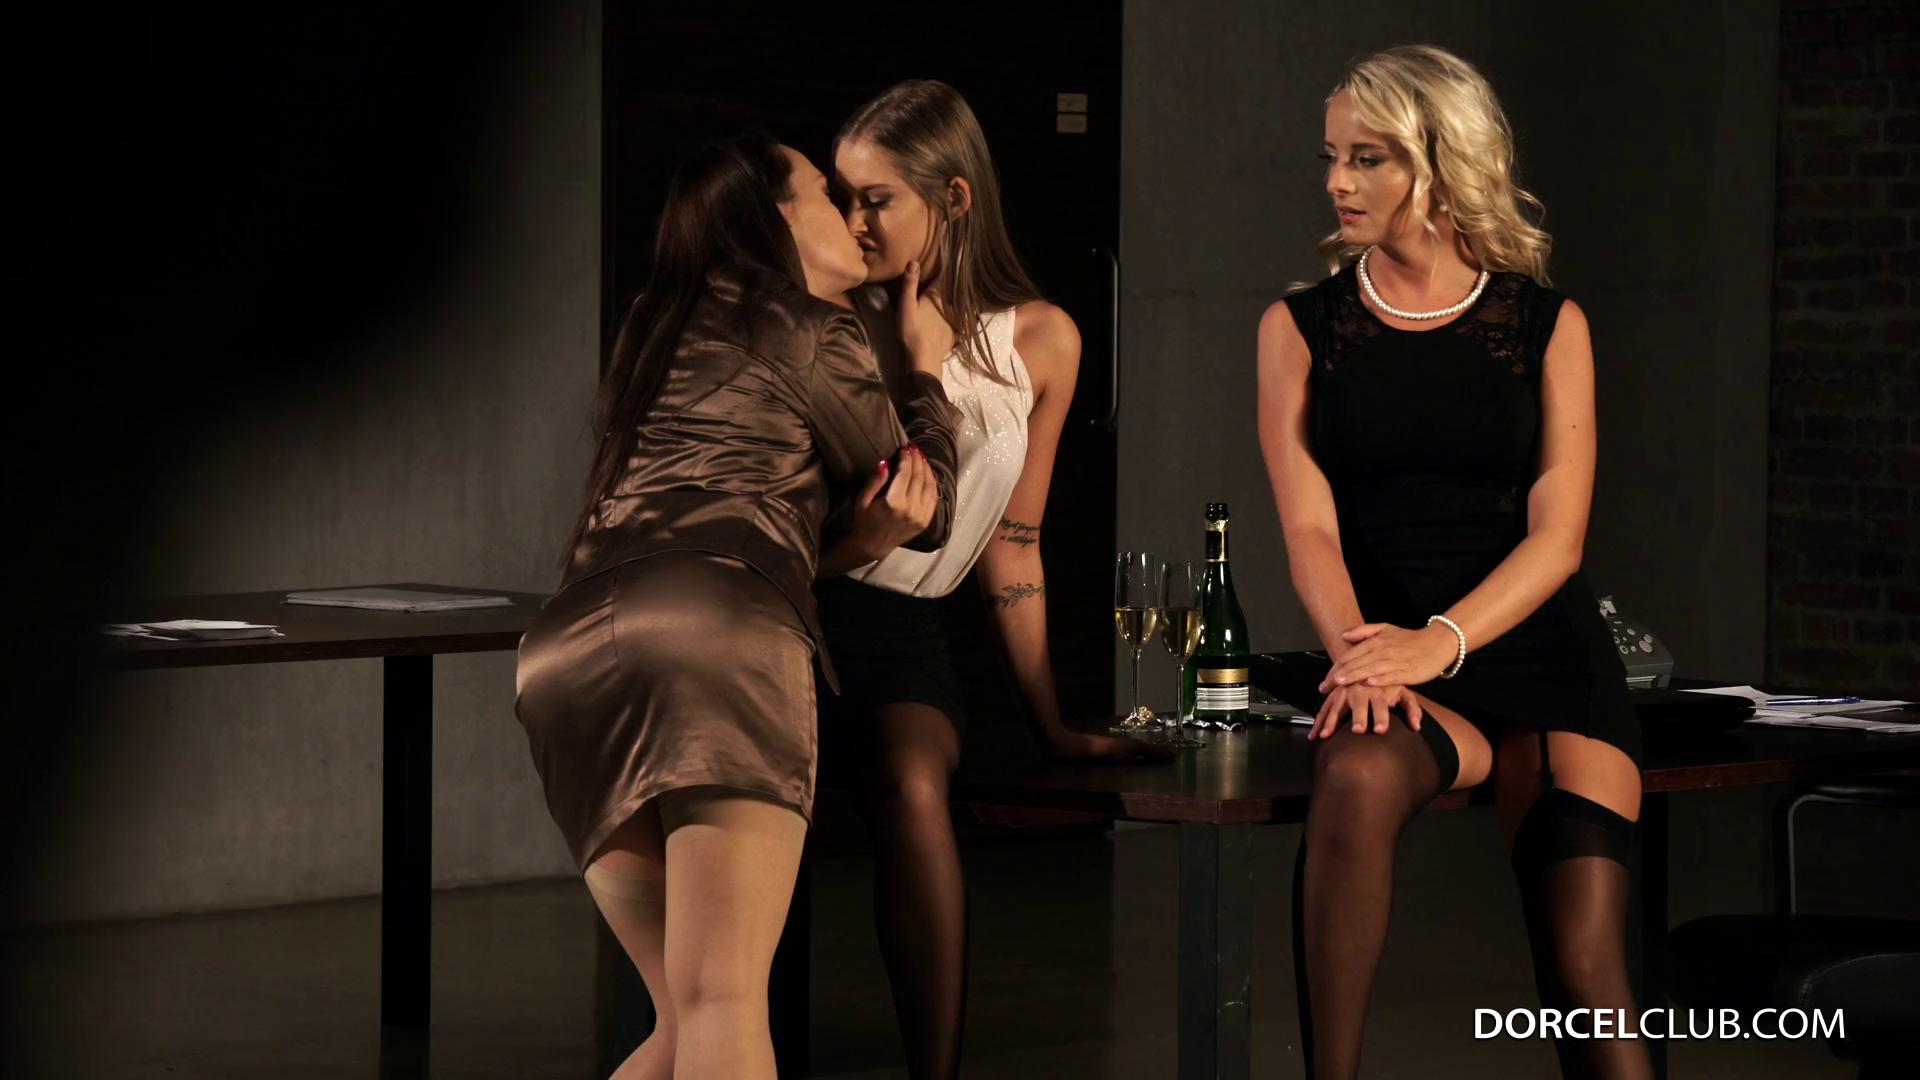 DorcelClub – Tiffany Tatum Victoria Pure And Blue Angel Colleagues Friendship Ends Up Groping…